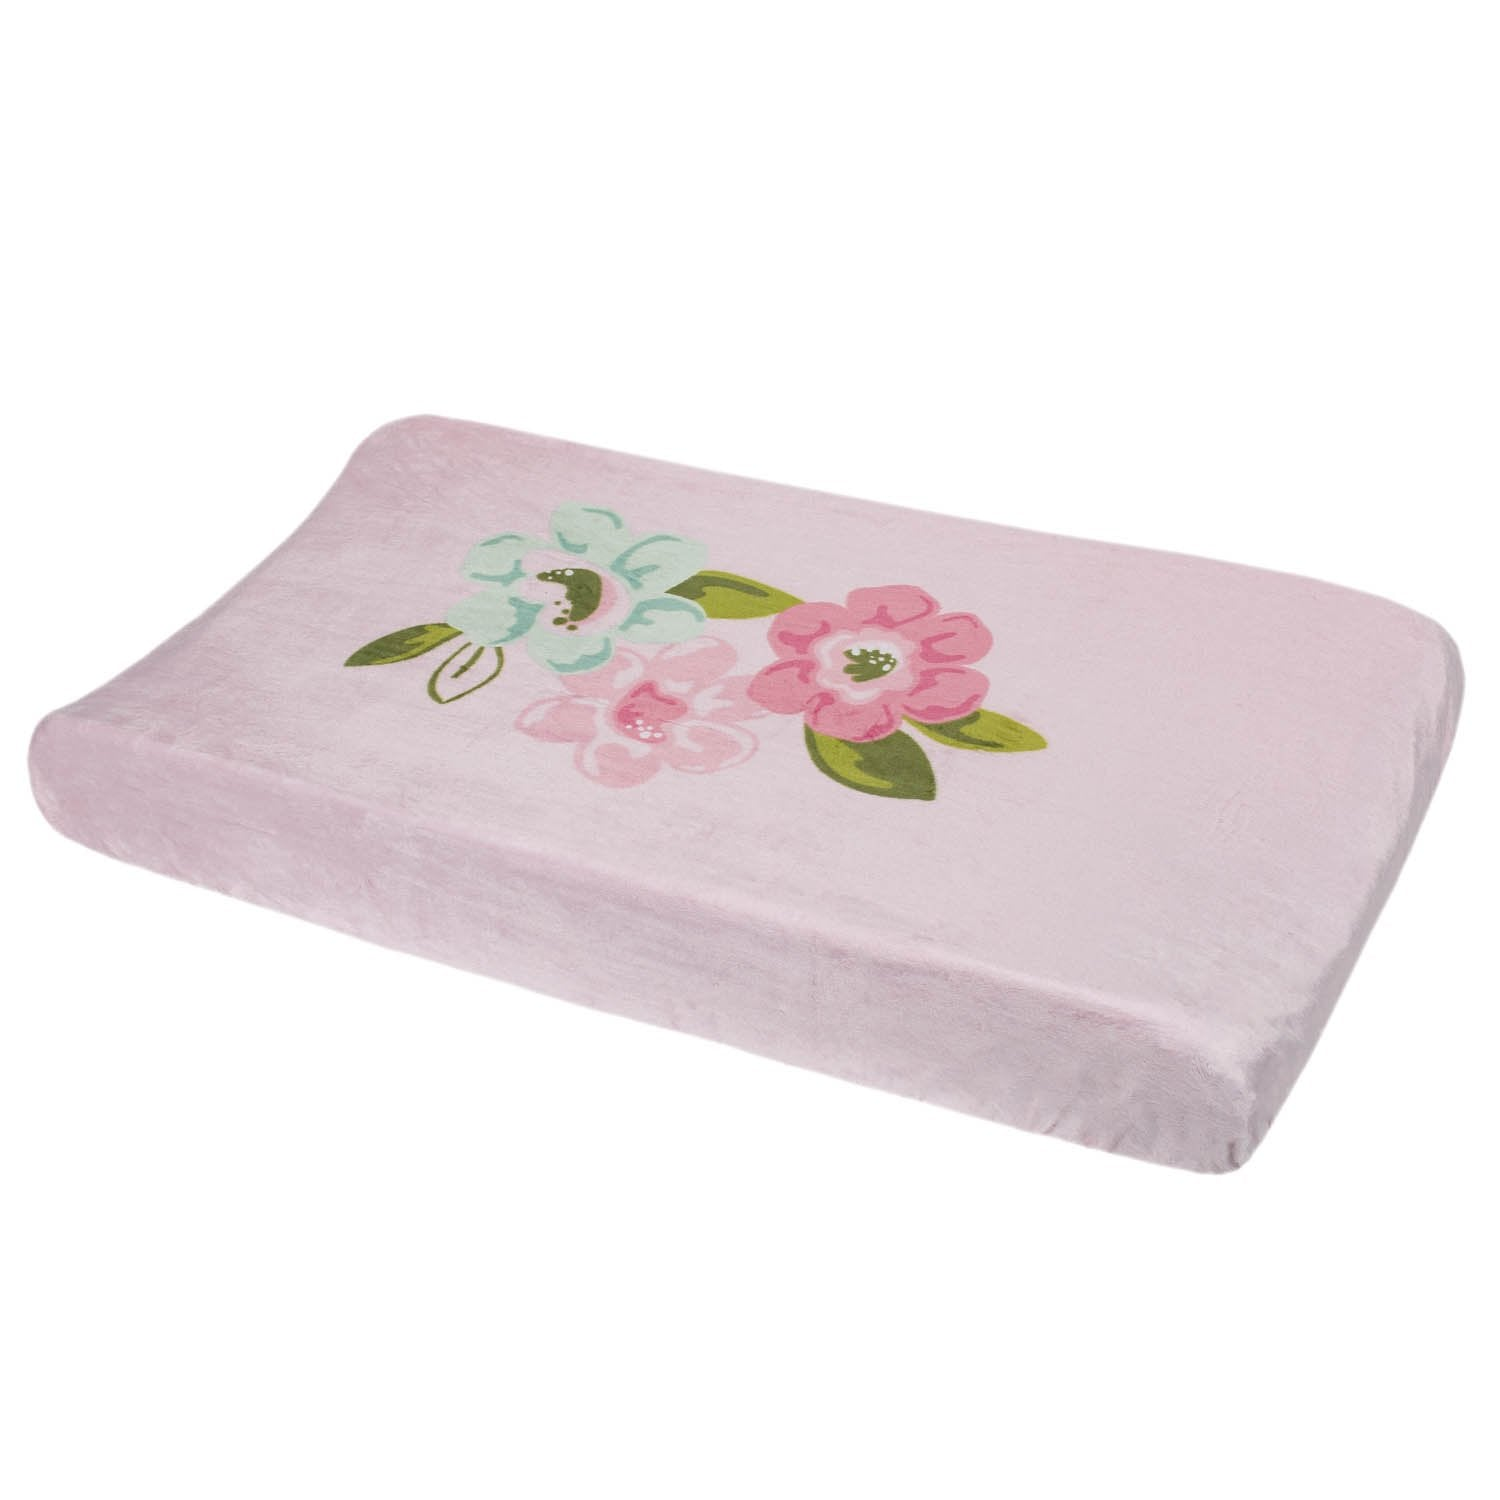 Just Born One World Collection Changing Pad Cover - Blossom-Gerber Childrenswear